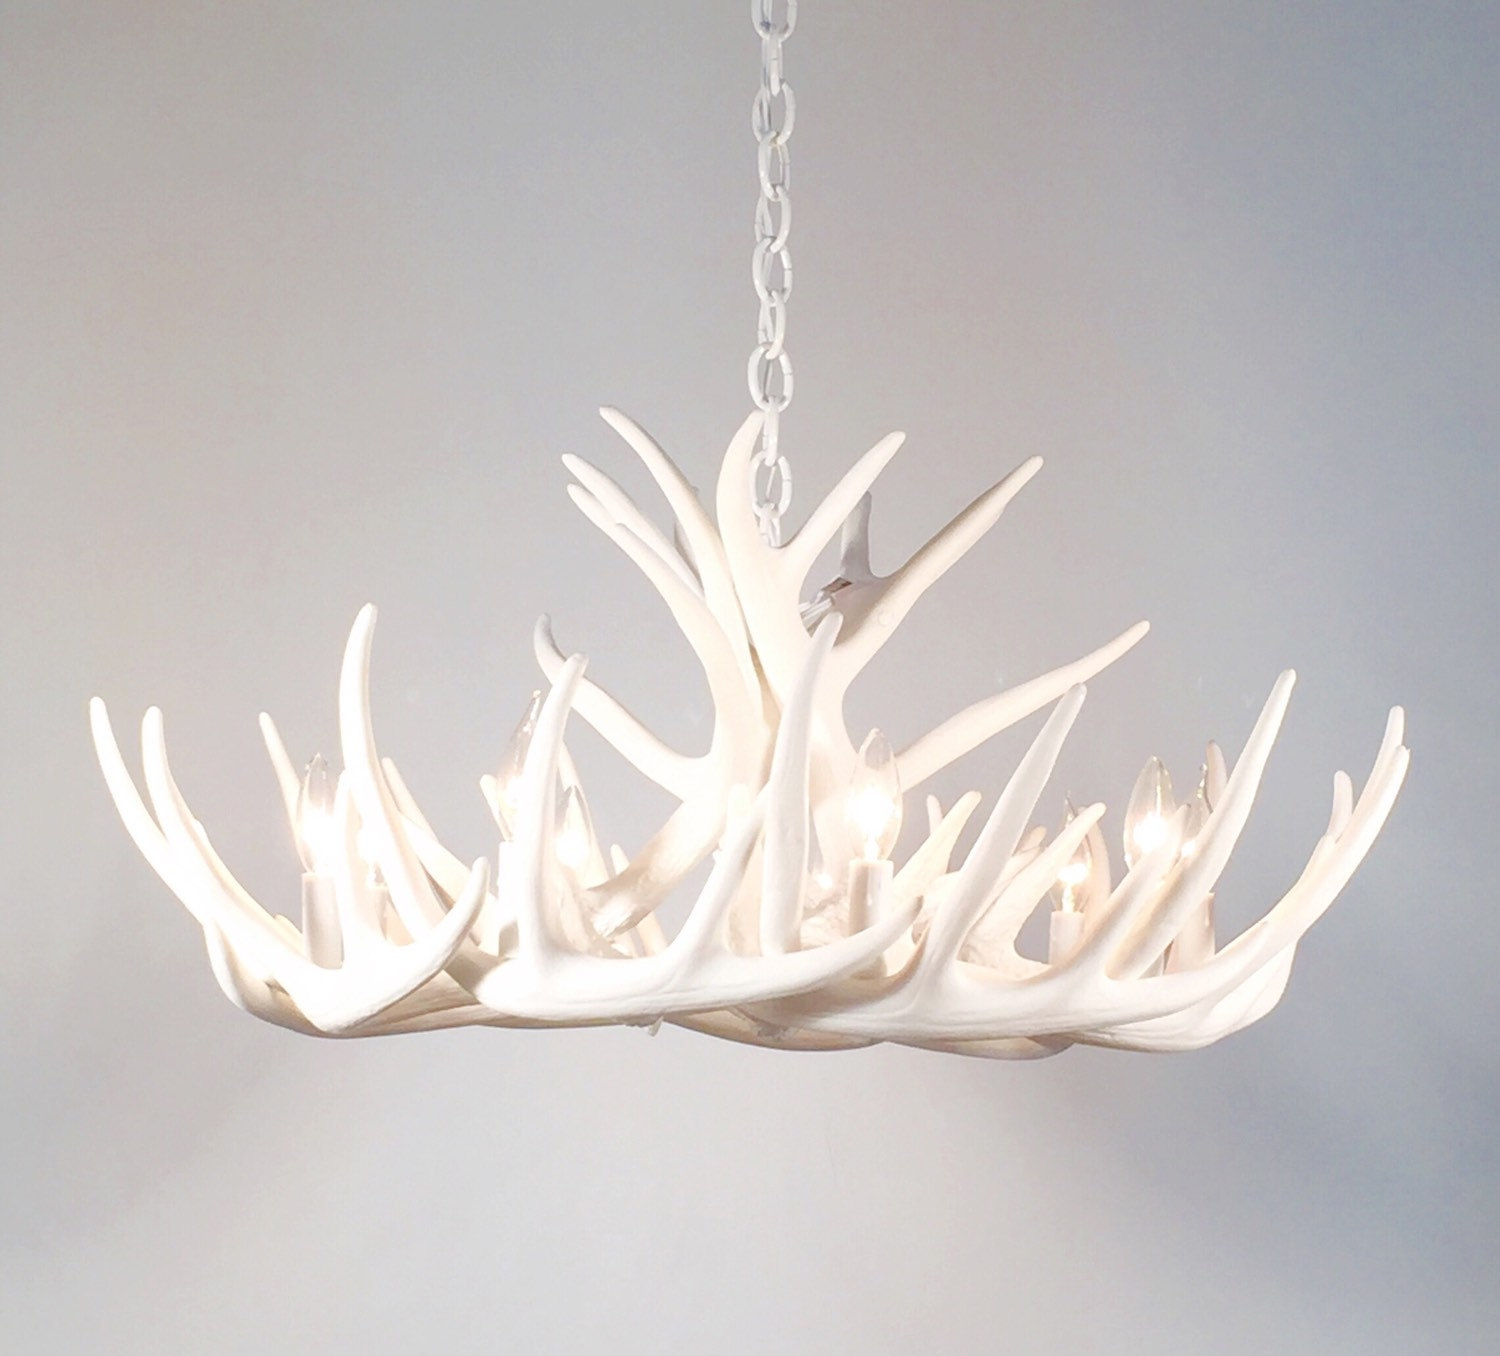 12 inspirations of modern antler chandelier antler chandelier etsy in modern antler chandelier 1 of 12 arubaitofo Gallery